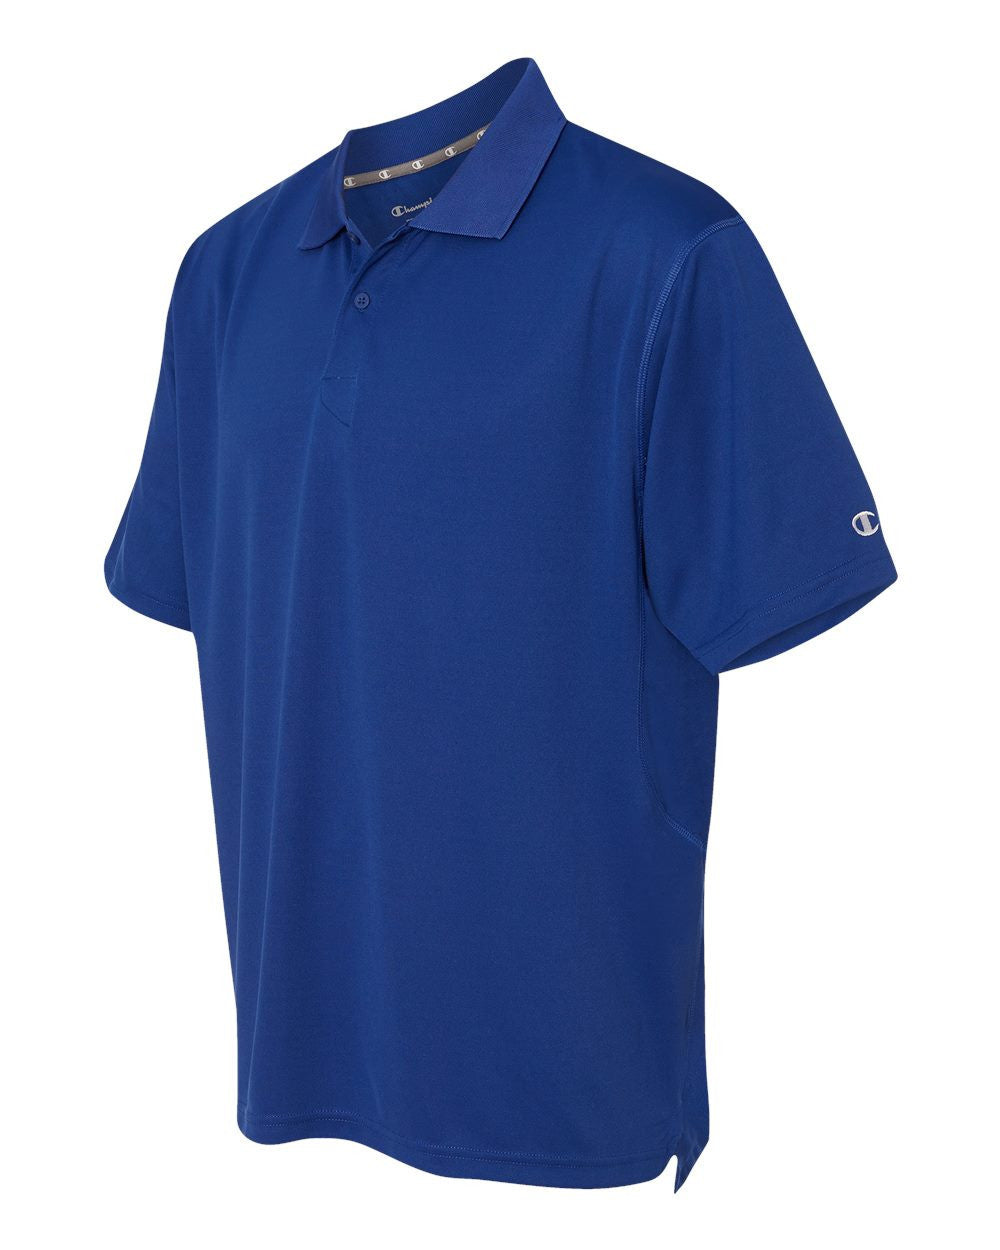 Performance Polo by Champion - Discountedrack.com